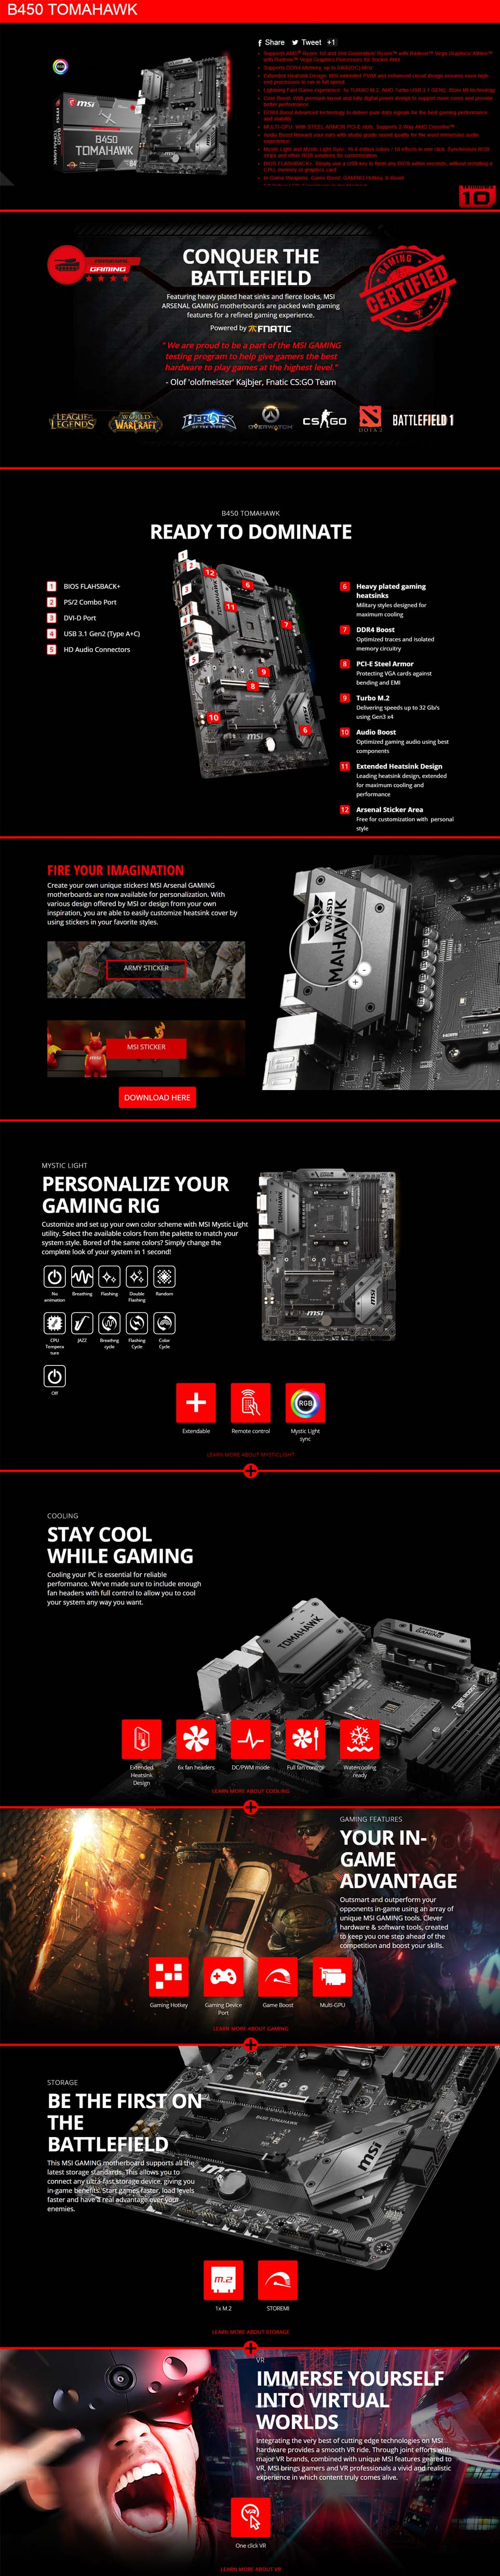 MSI B450 TOMAHAWK Motherboard (AMD AM4)